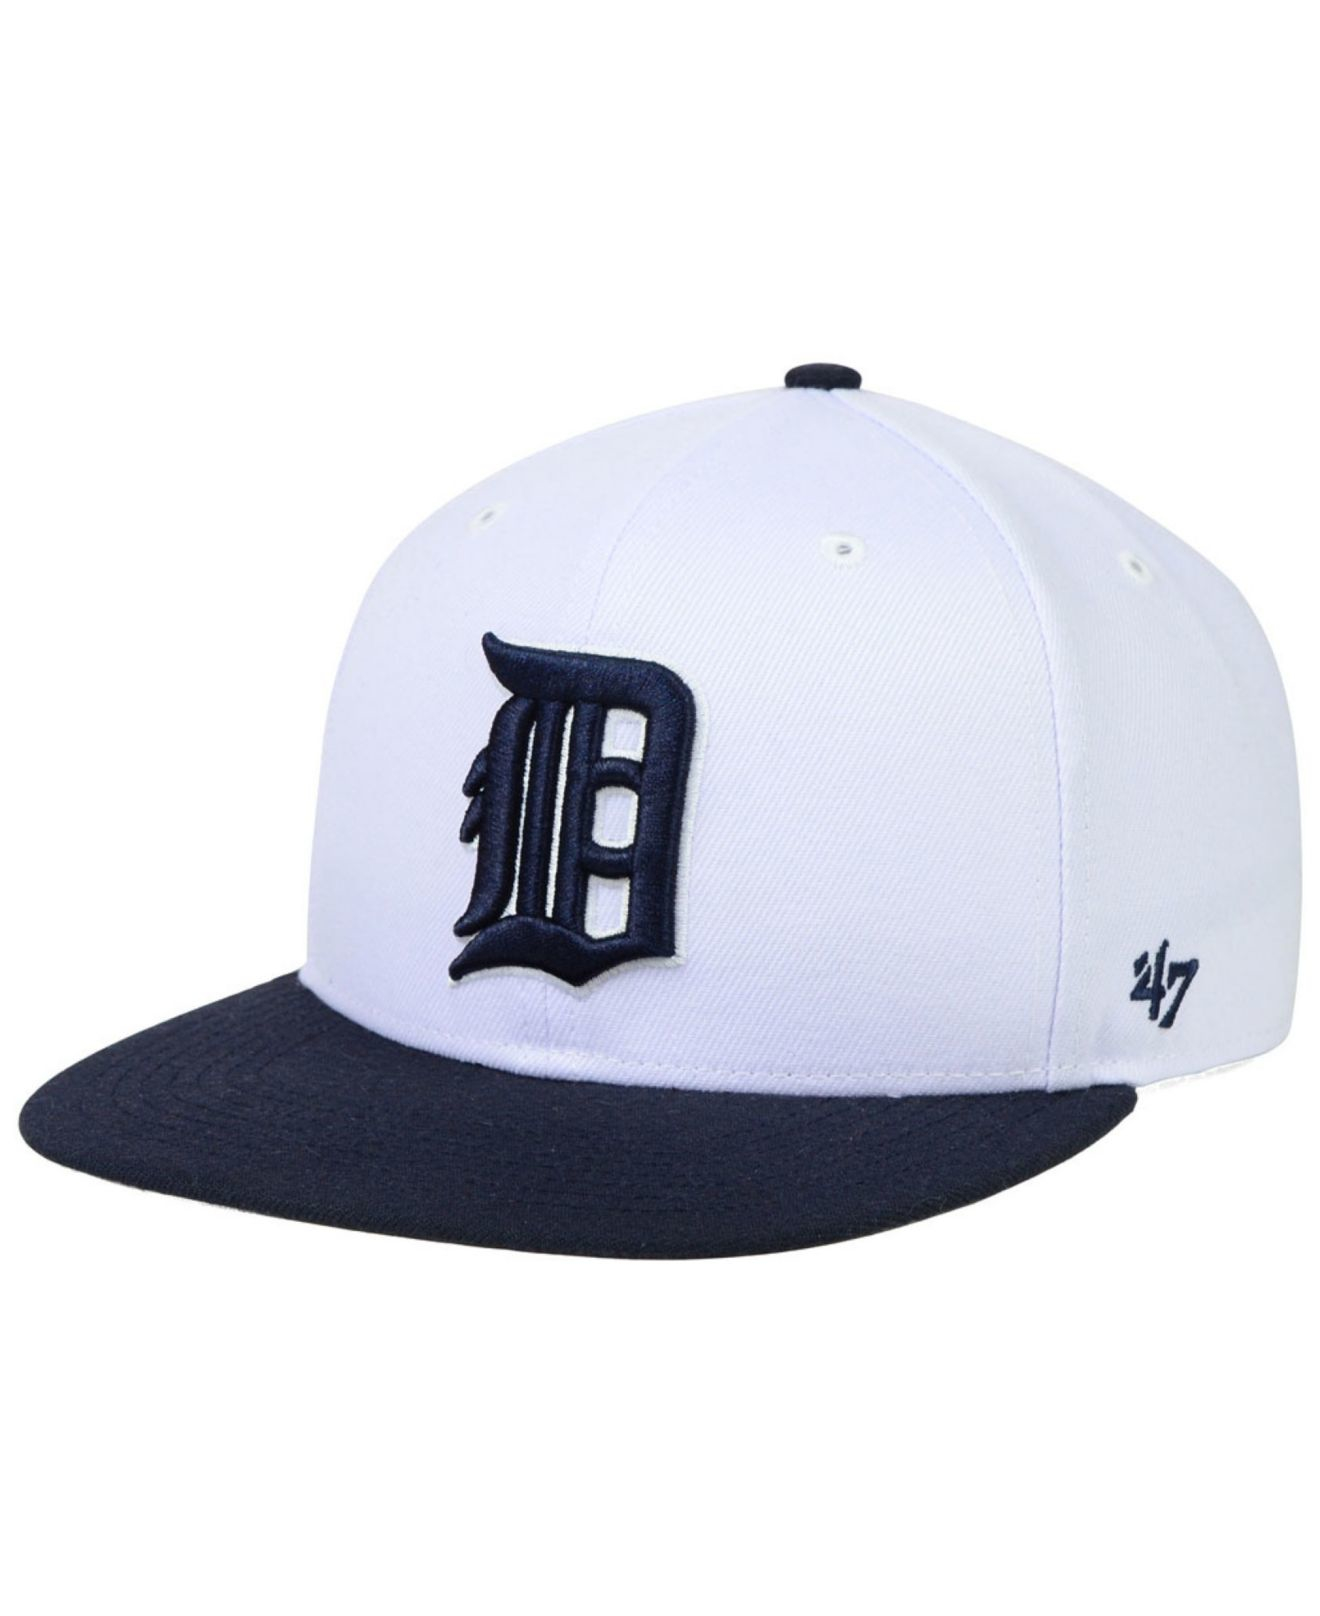 official photos 0e189 76e12 ... italy lyst 47 brand detroit tigers sure shot snapback cap in white for  men 1989b 40a56